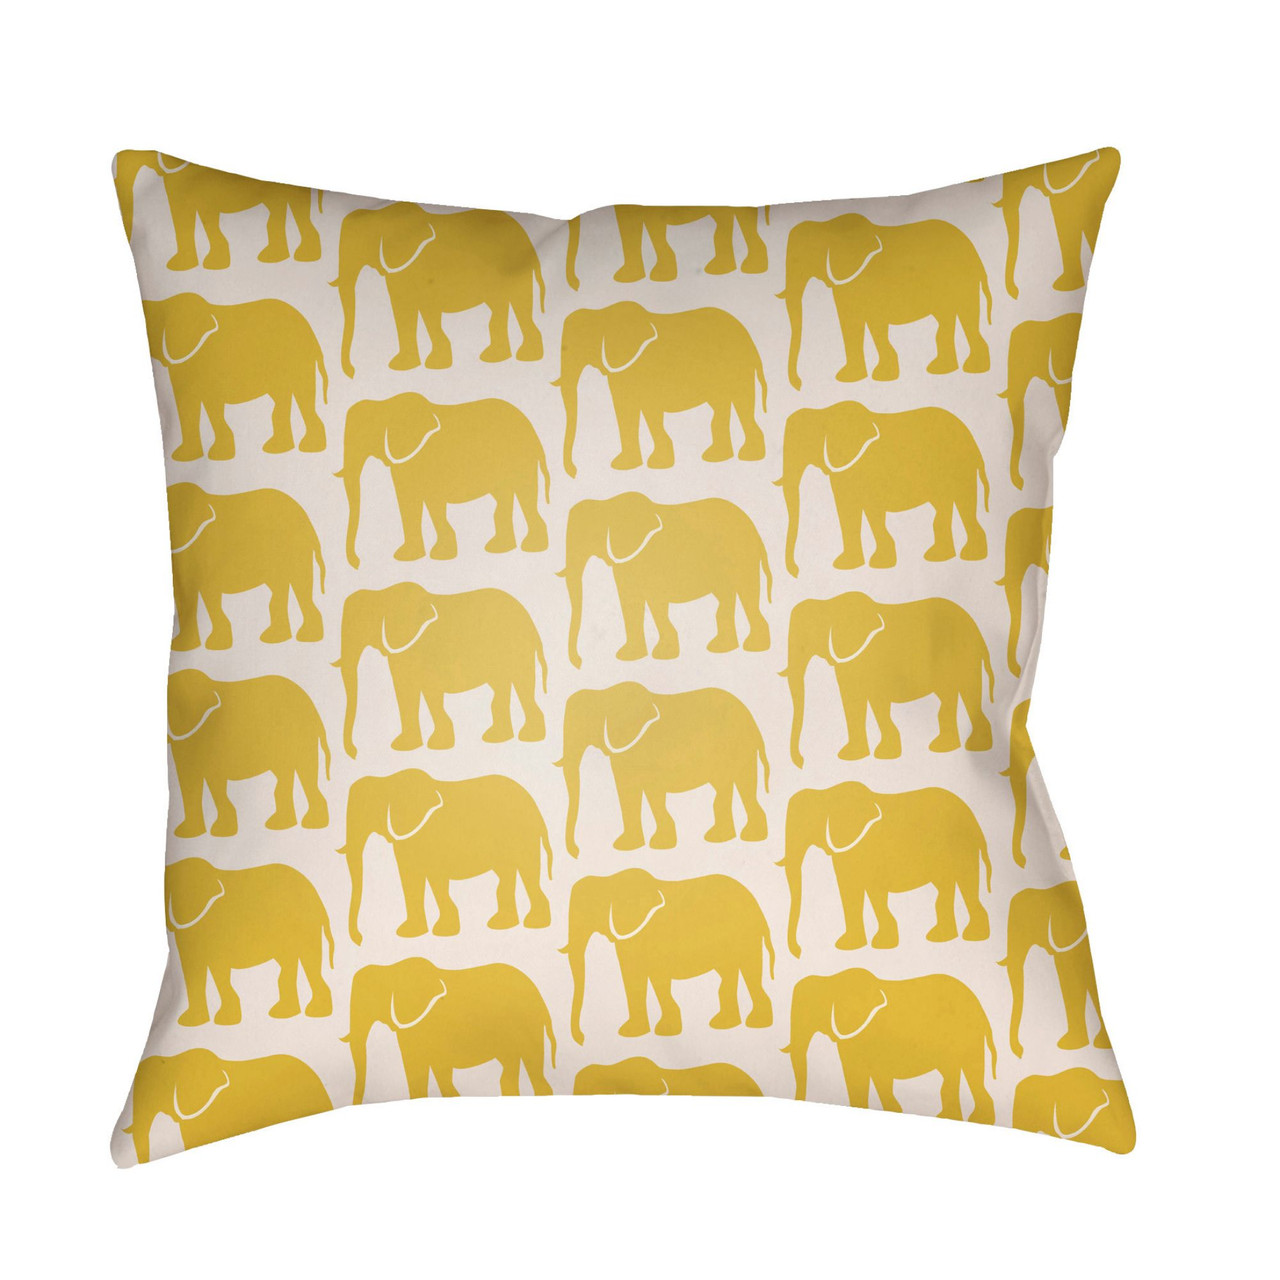 16 white and yellow elephants printed square throw pillow cover